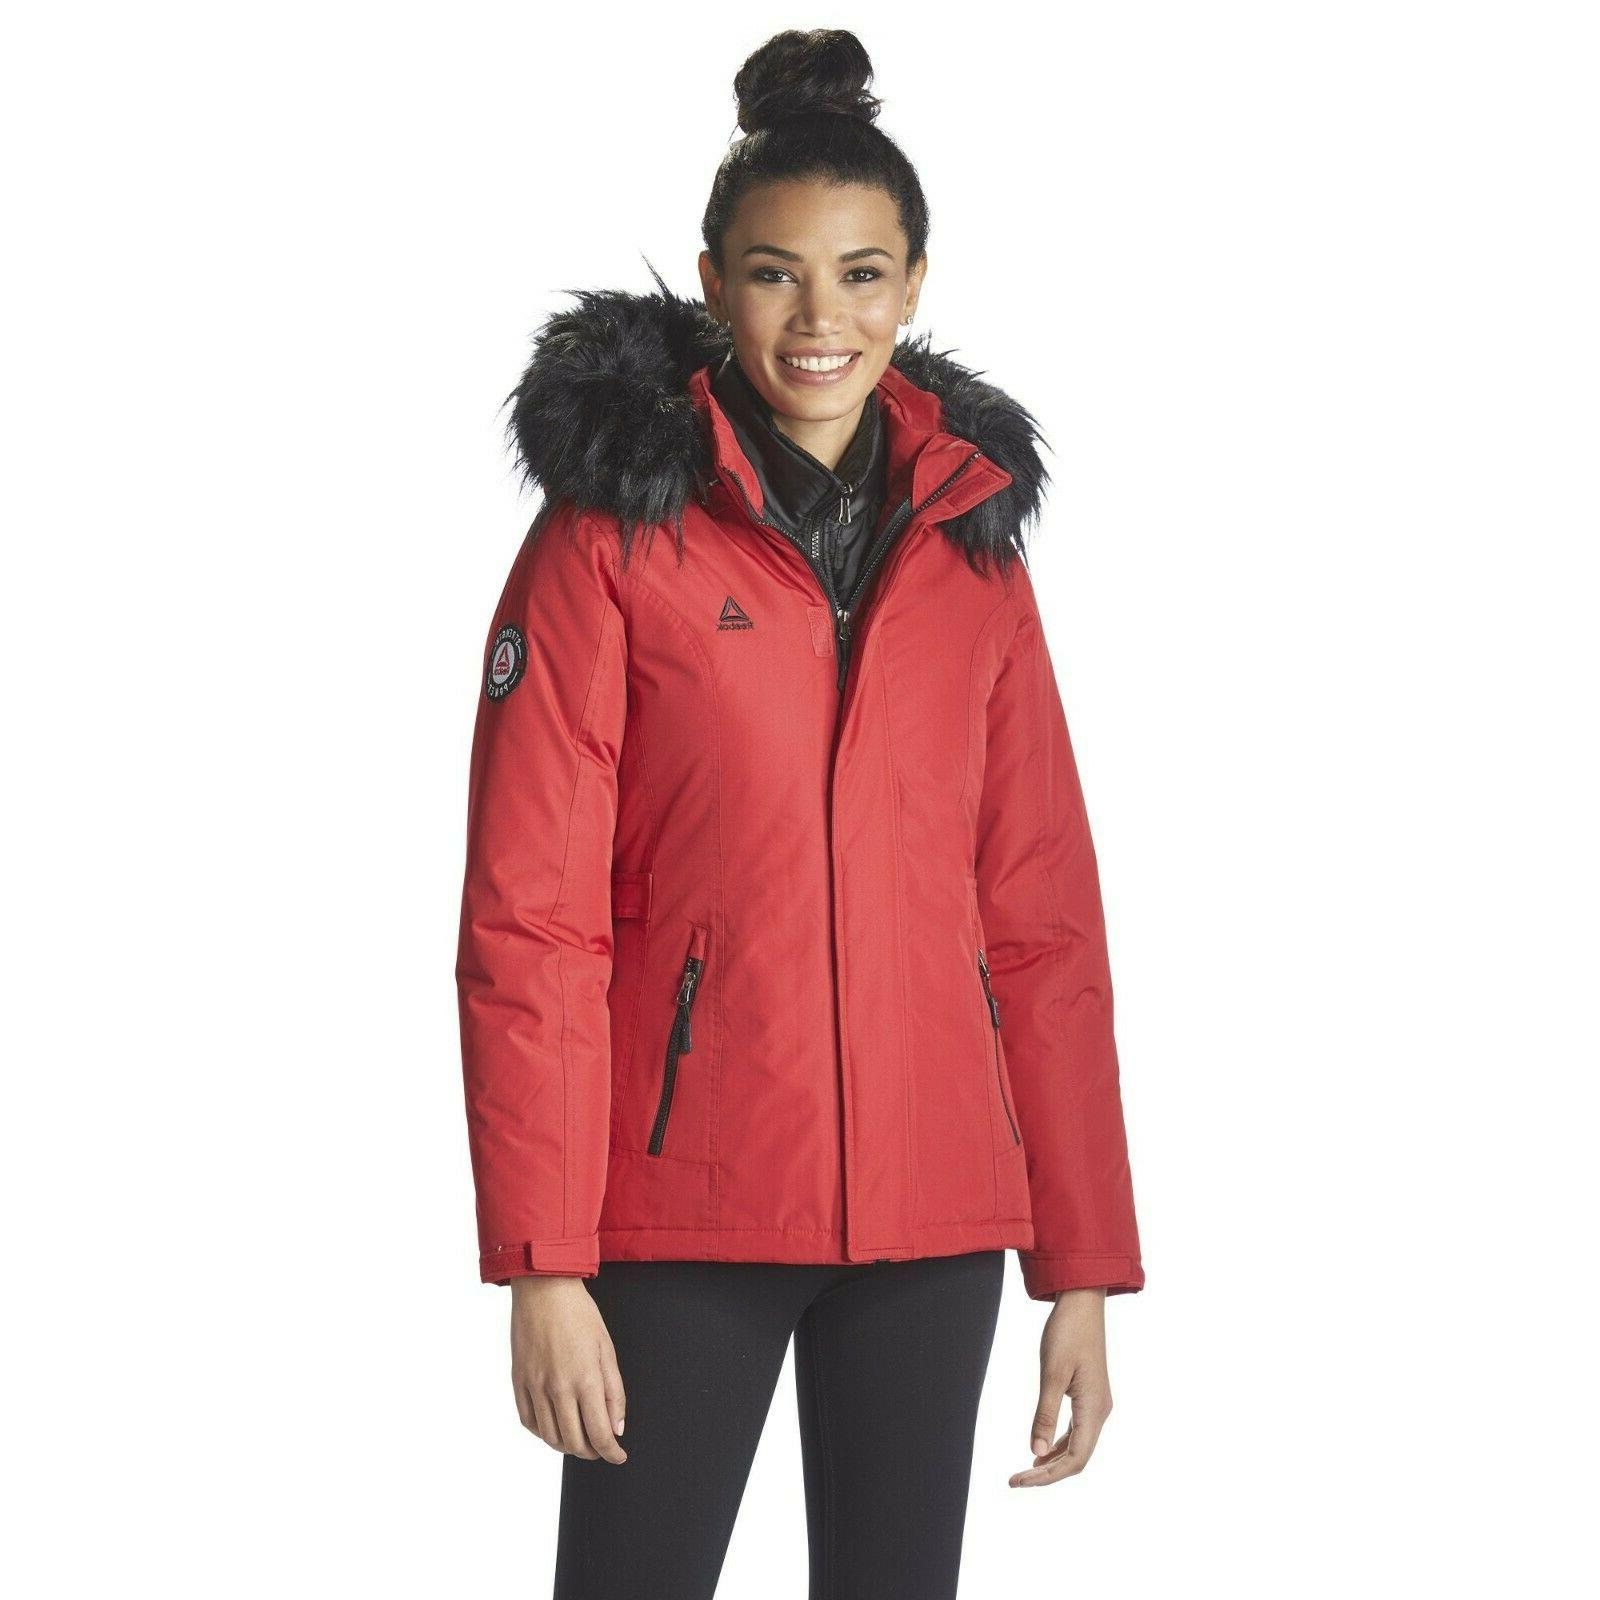 3 in 1 hooded ski jacket women